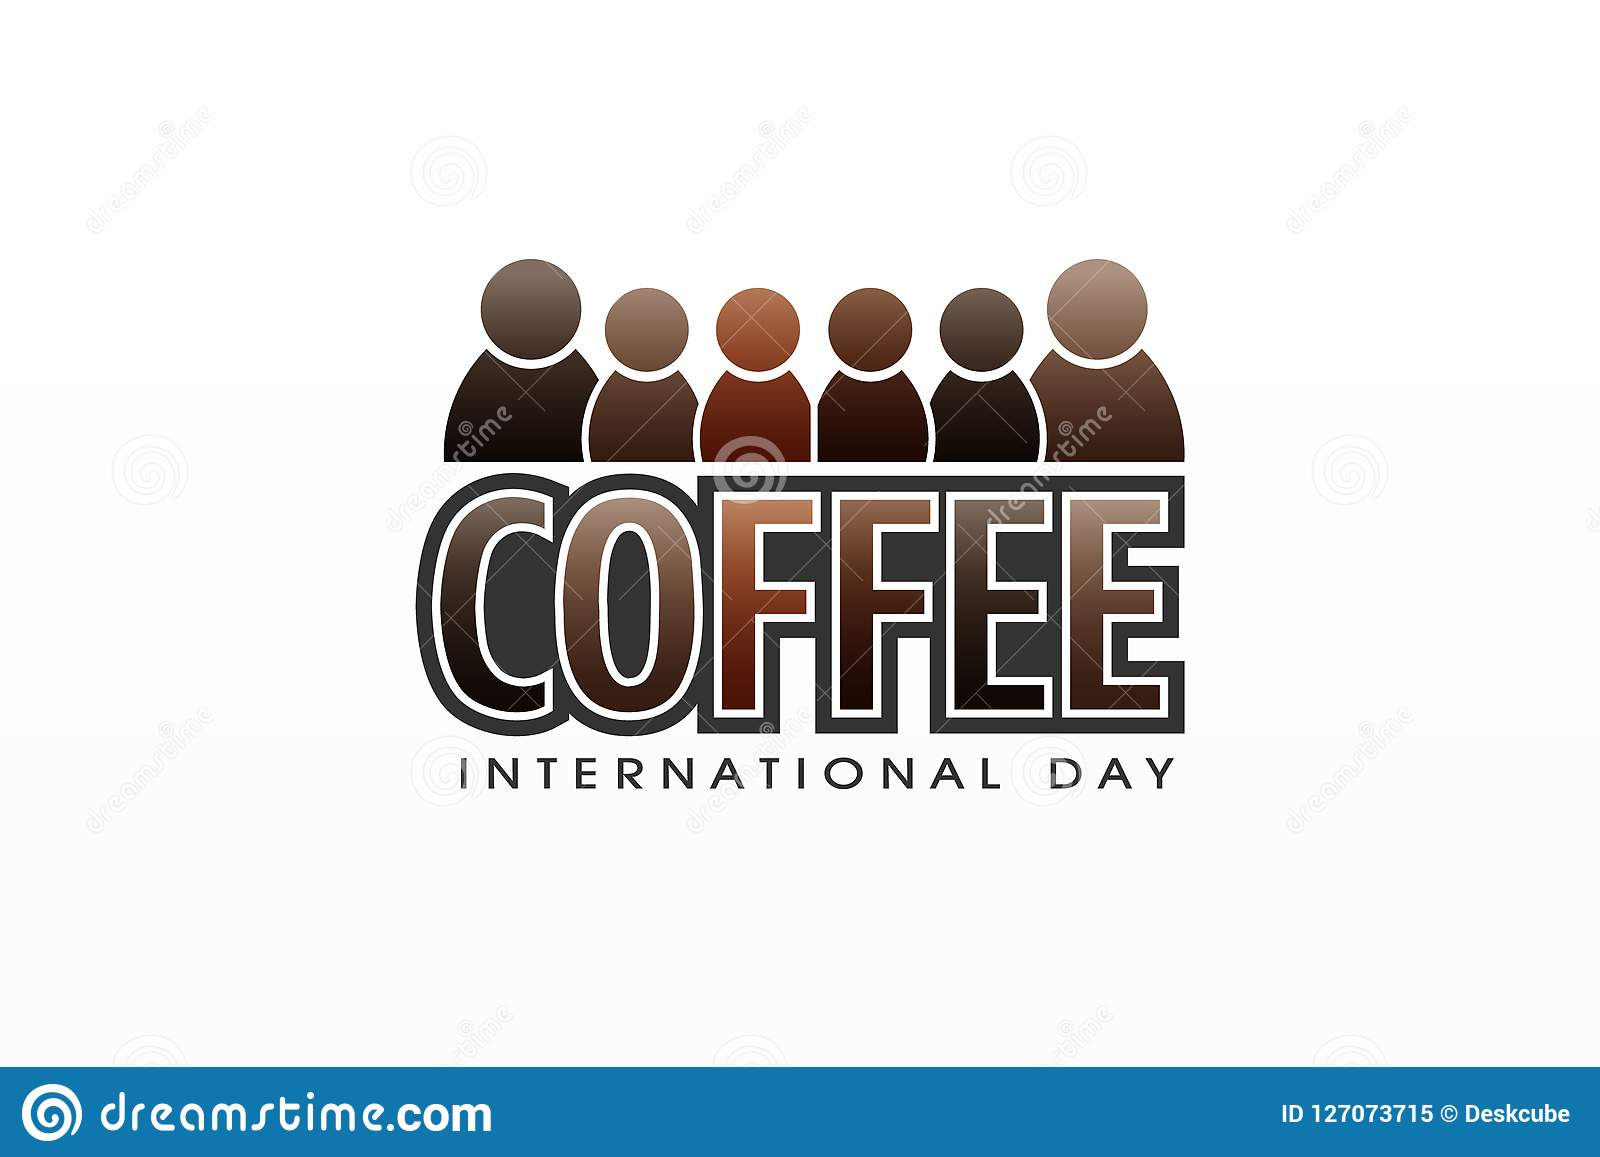 29abe84c9d15 Concept for an international coffee day